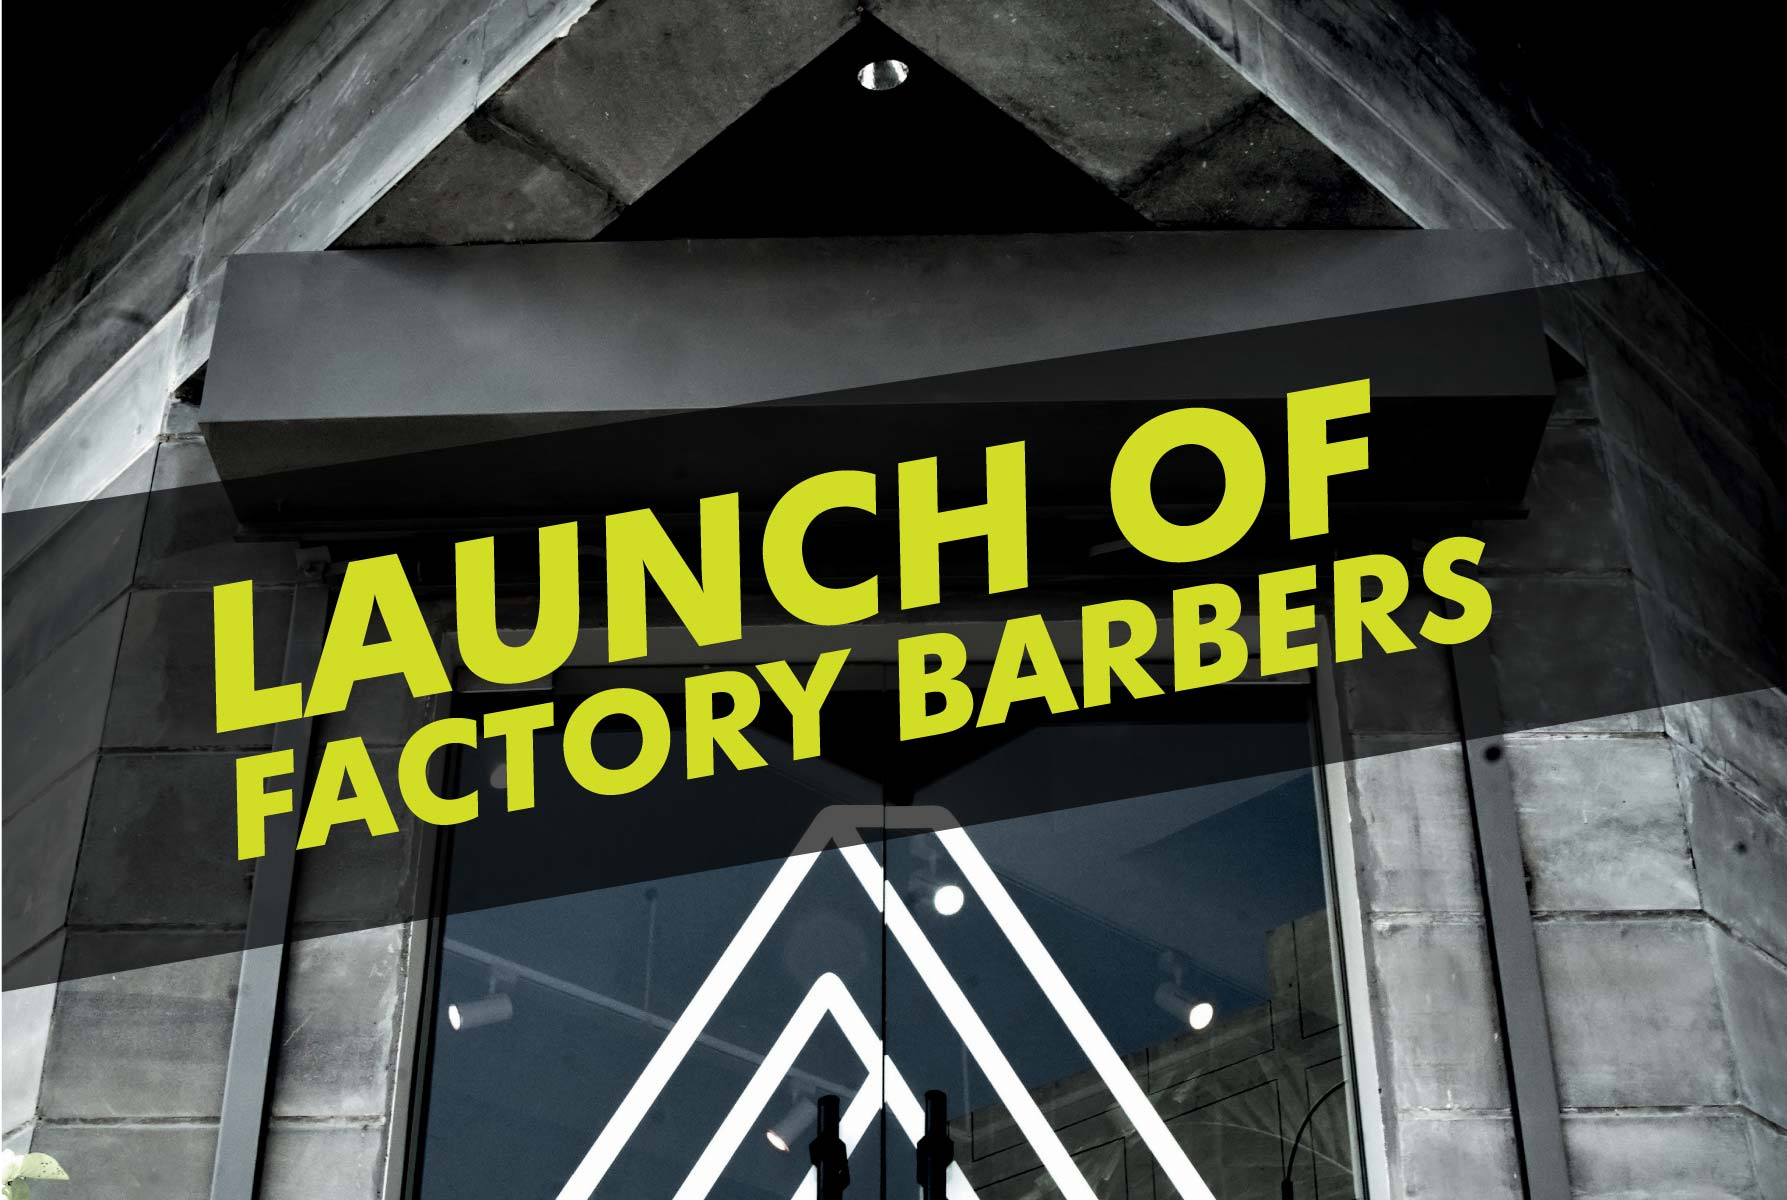 Launch of Factory Barbers